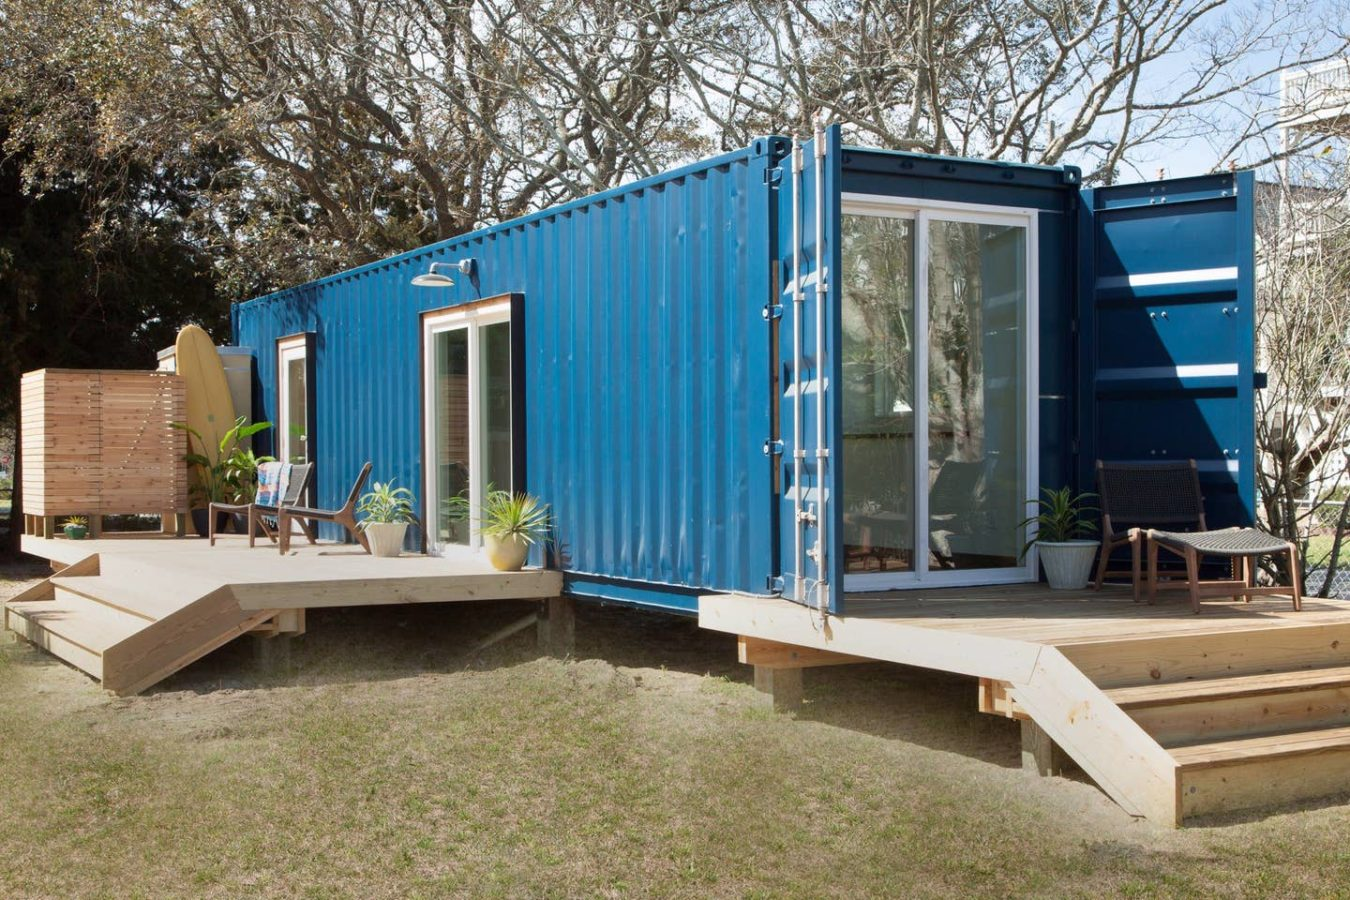 5 classic blue Airbnbs to check out with Pantone's Colour of the Year in mind